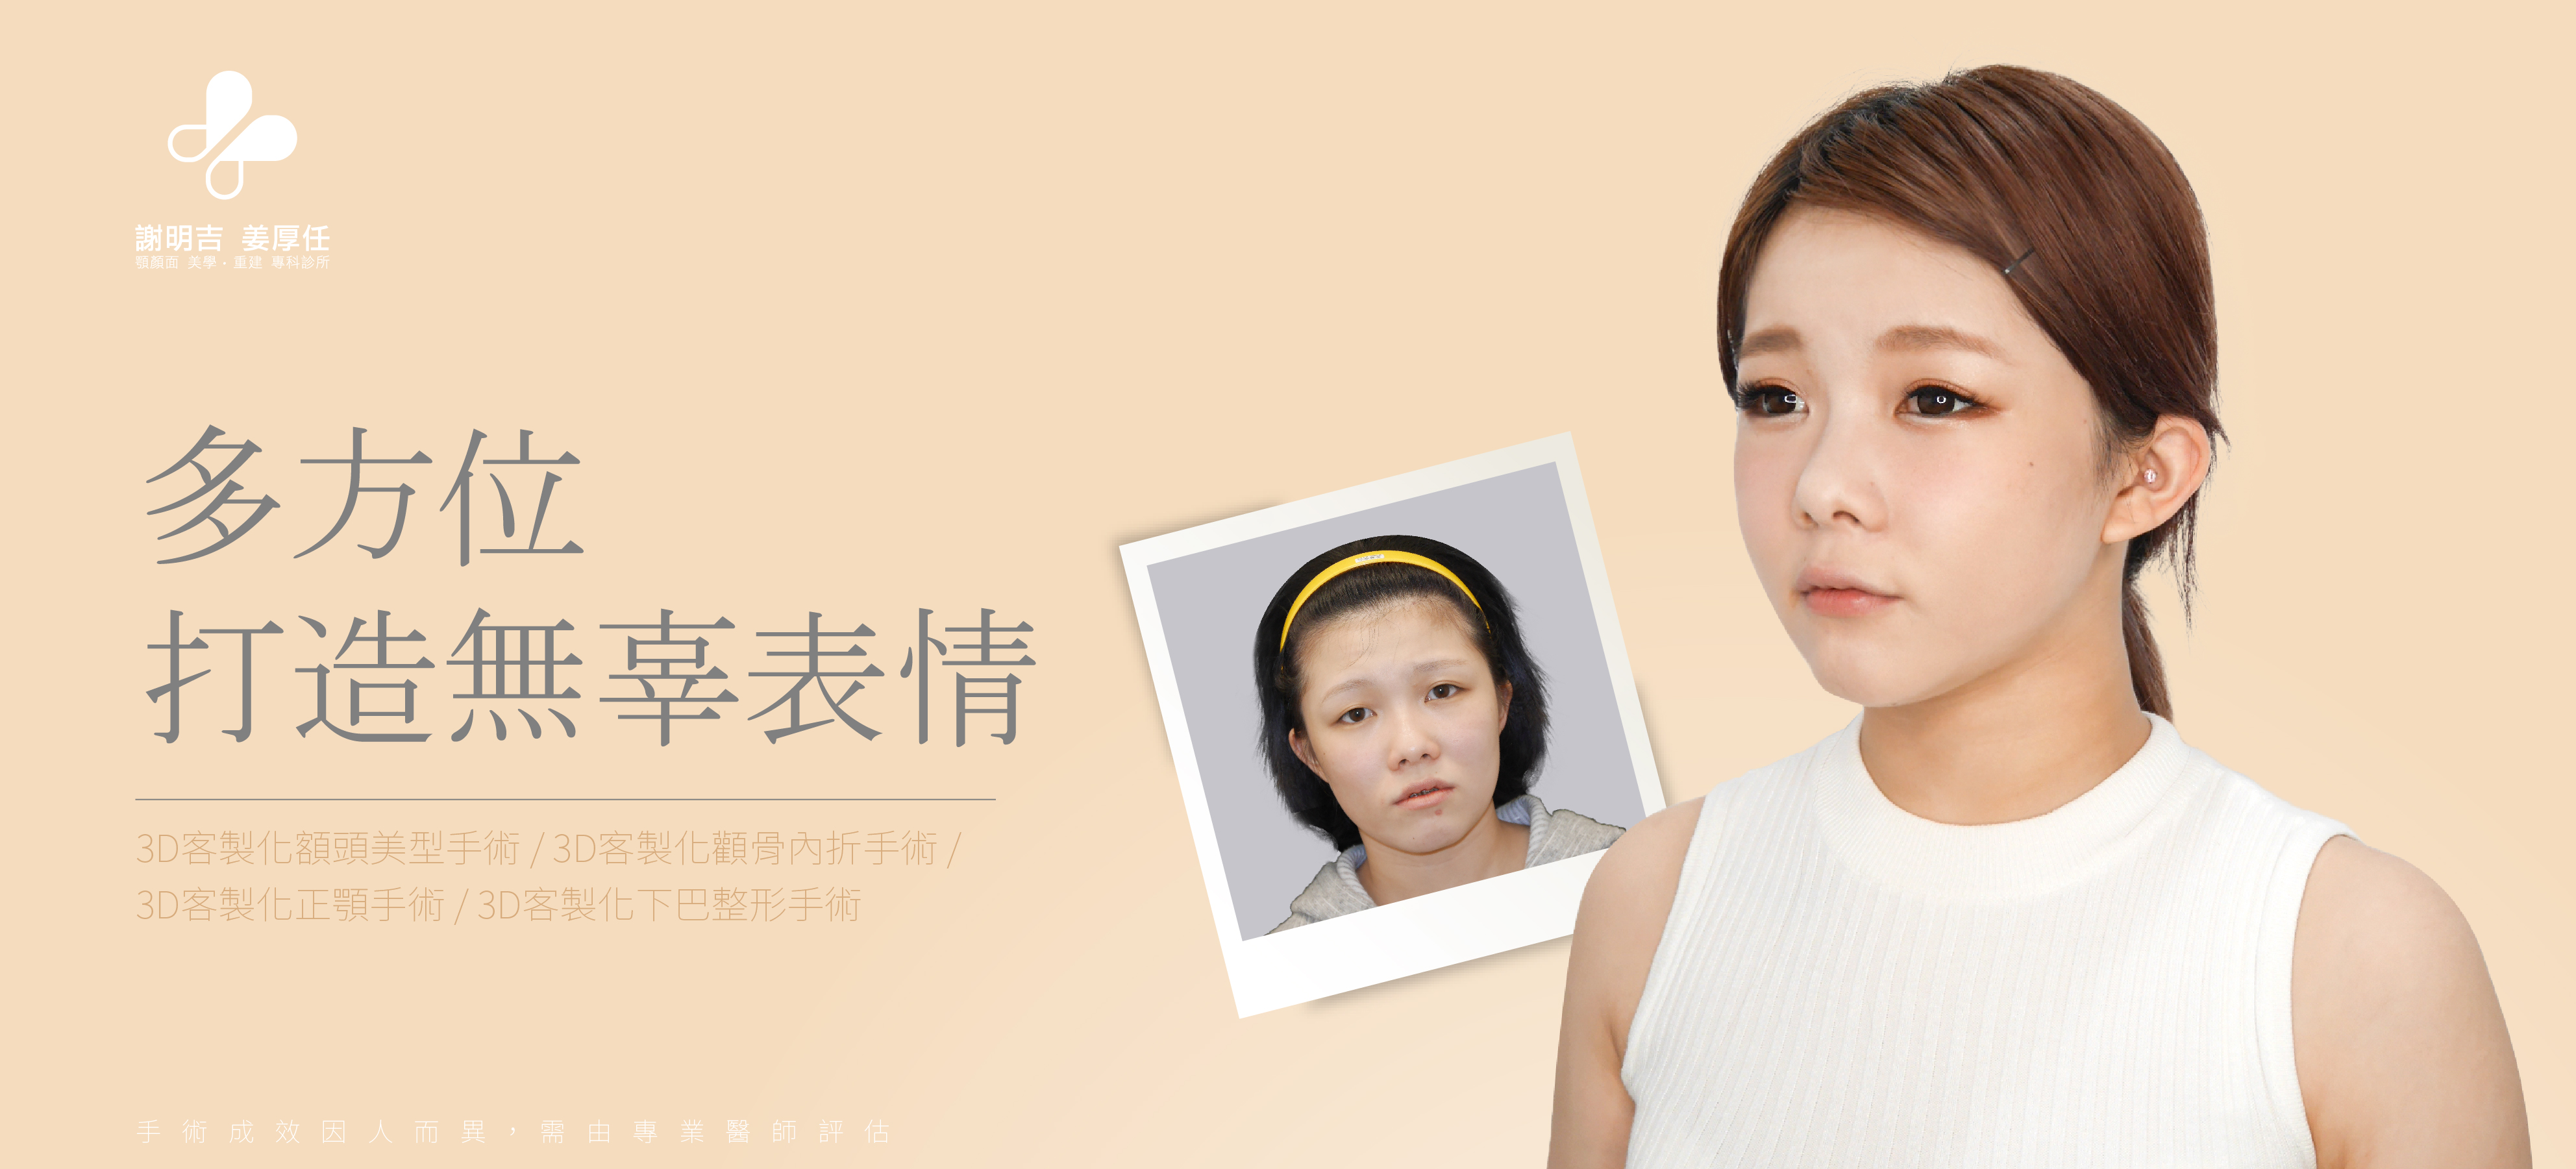 【3D Orthognathic Surgery】Moon face, under bite combined with concaved mid-face. Phoebe